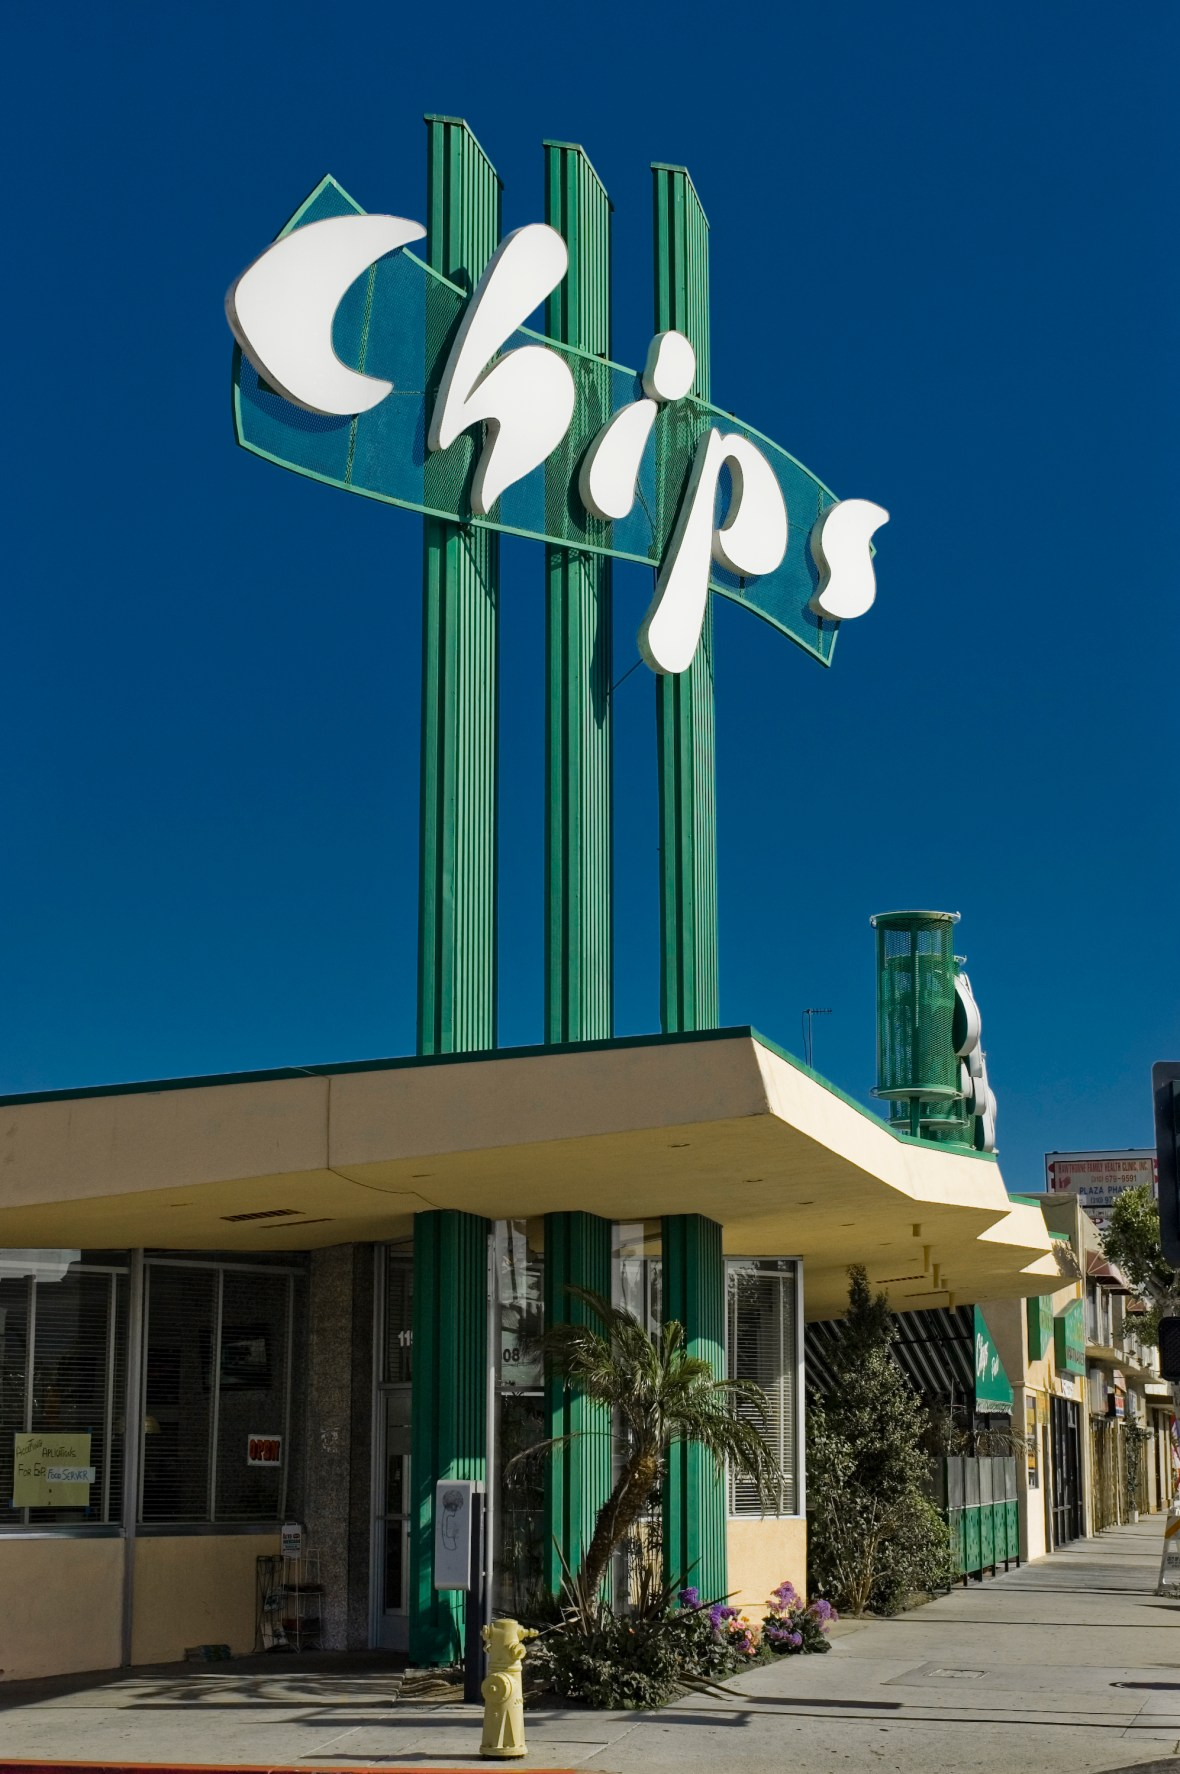 Chips Restaurant - 11908 Hawthorne Boulevard, Hawthorne, California U.S.A. - April 21, 2007